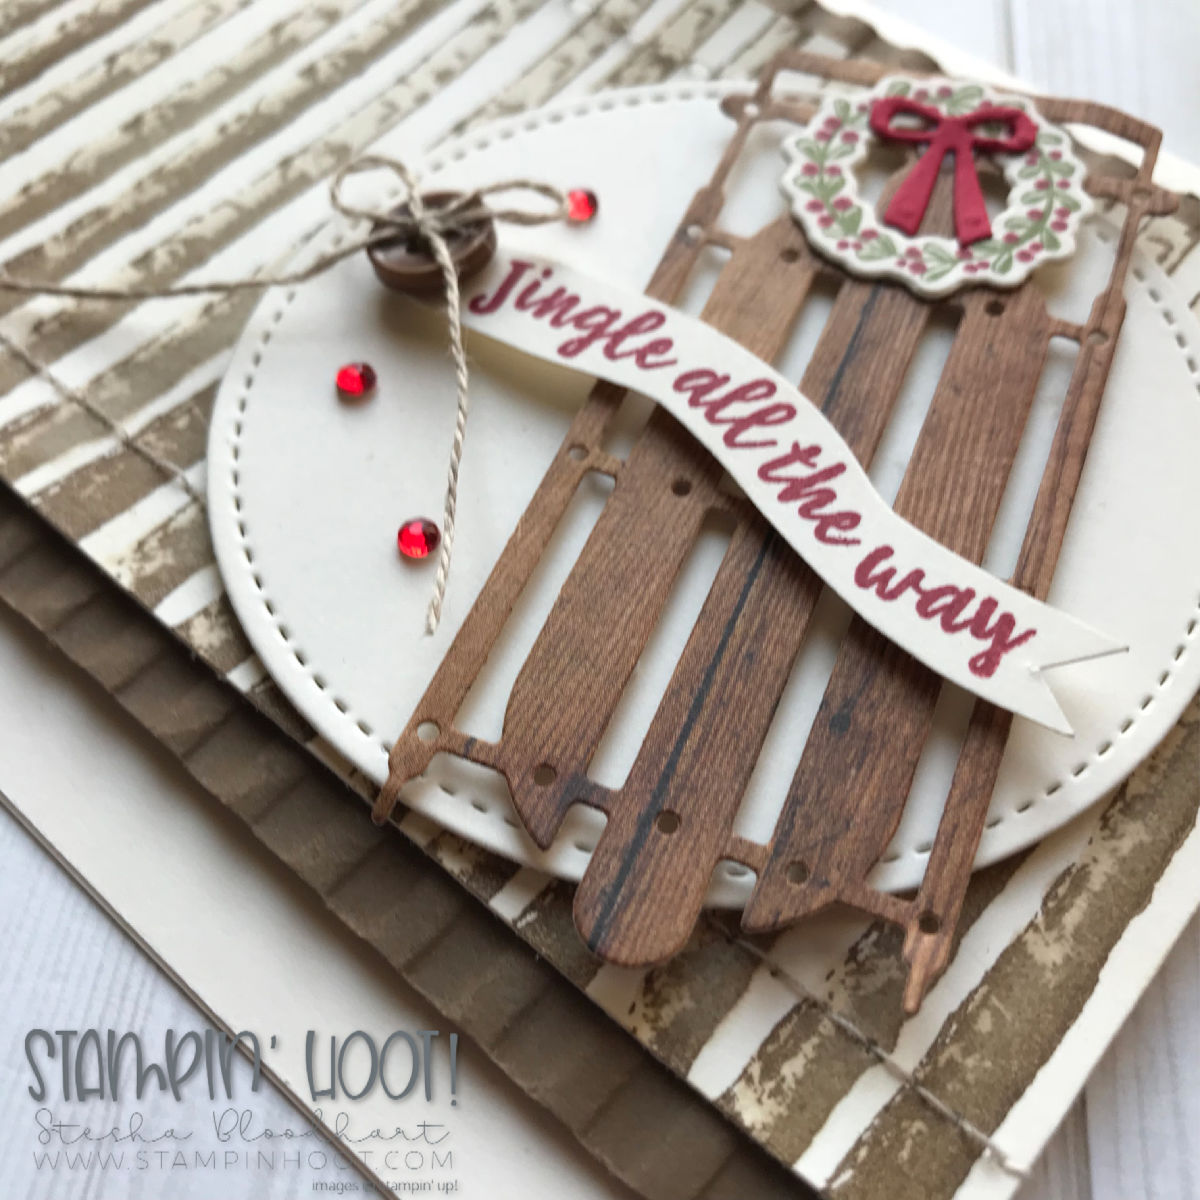 Alpine Adventure and Winter Woods Bundles by Stampin' Up! Handmade Jingle All the Way Holiday Card by Stesha Bloodhart, Stampin' Hoot! #steshabloodhart #stampinhoot